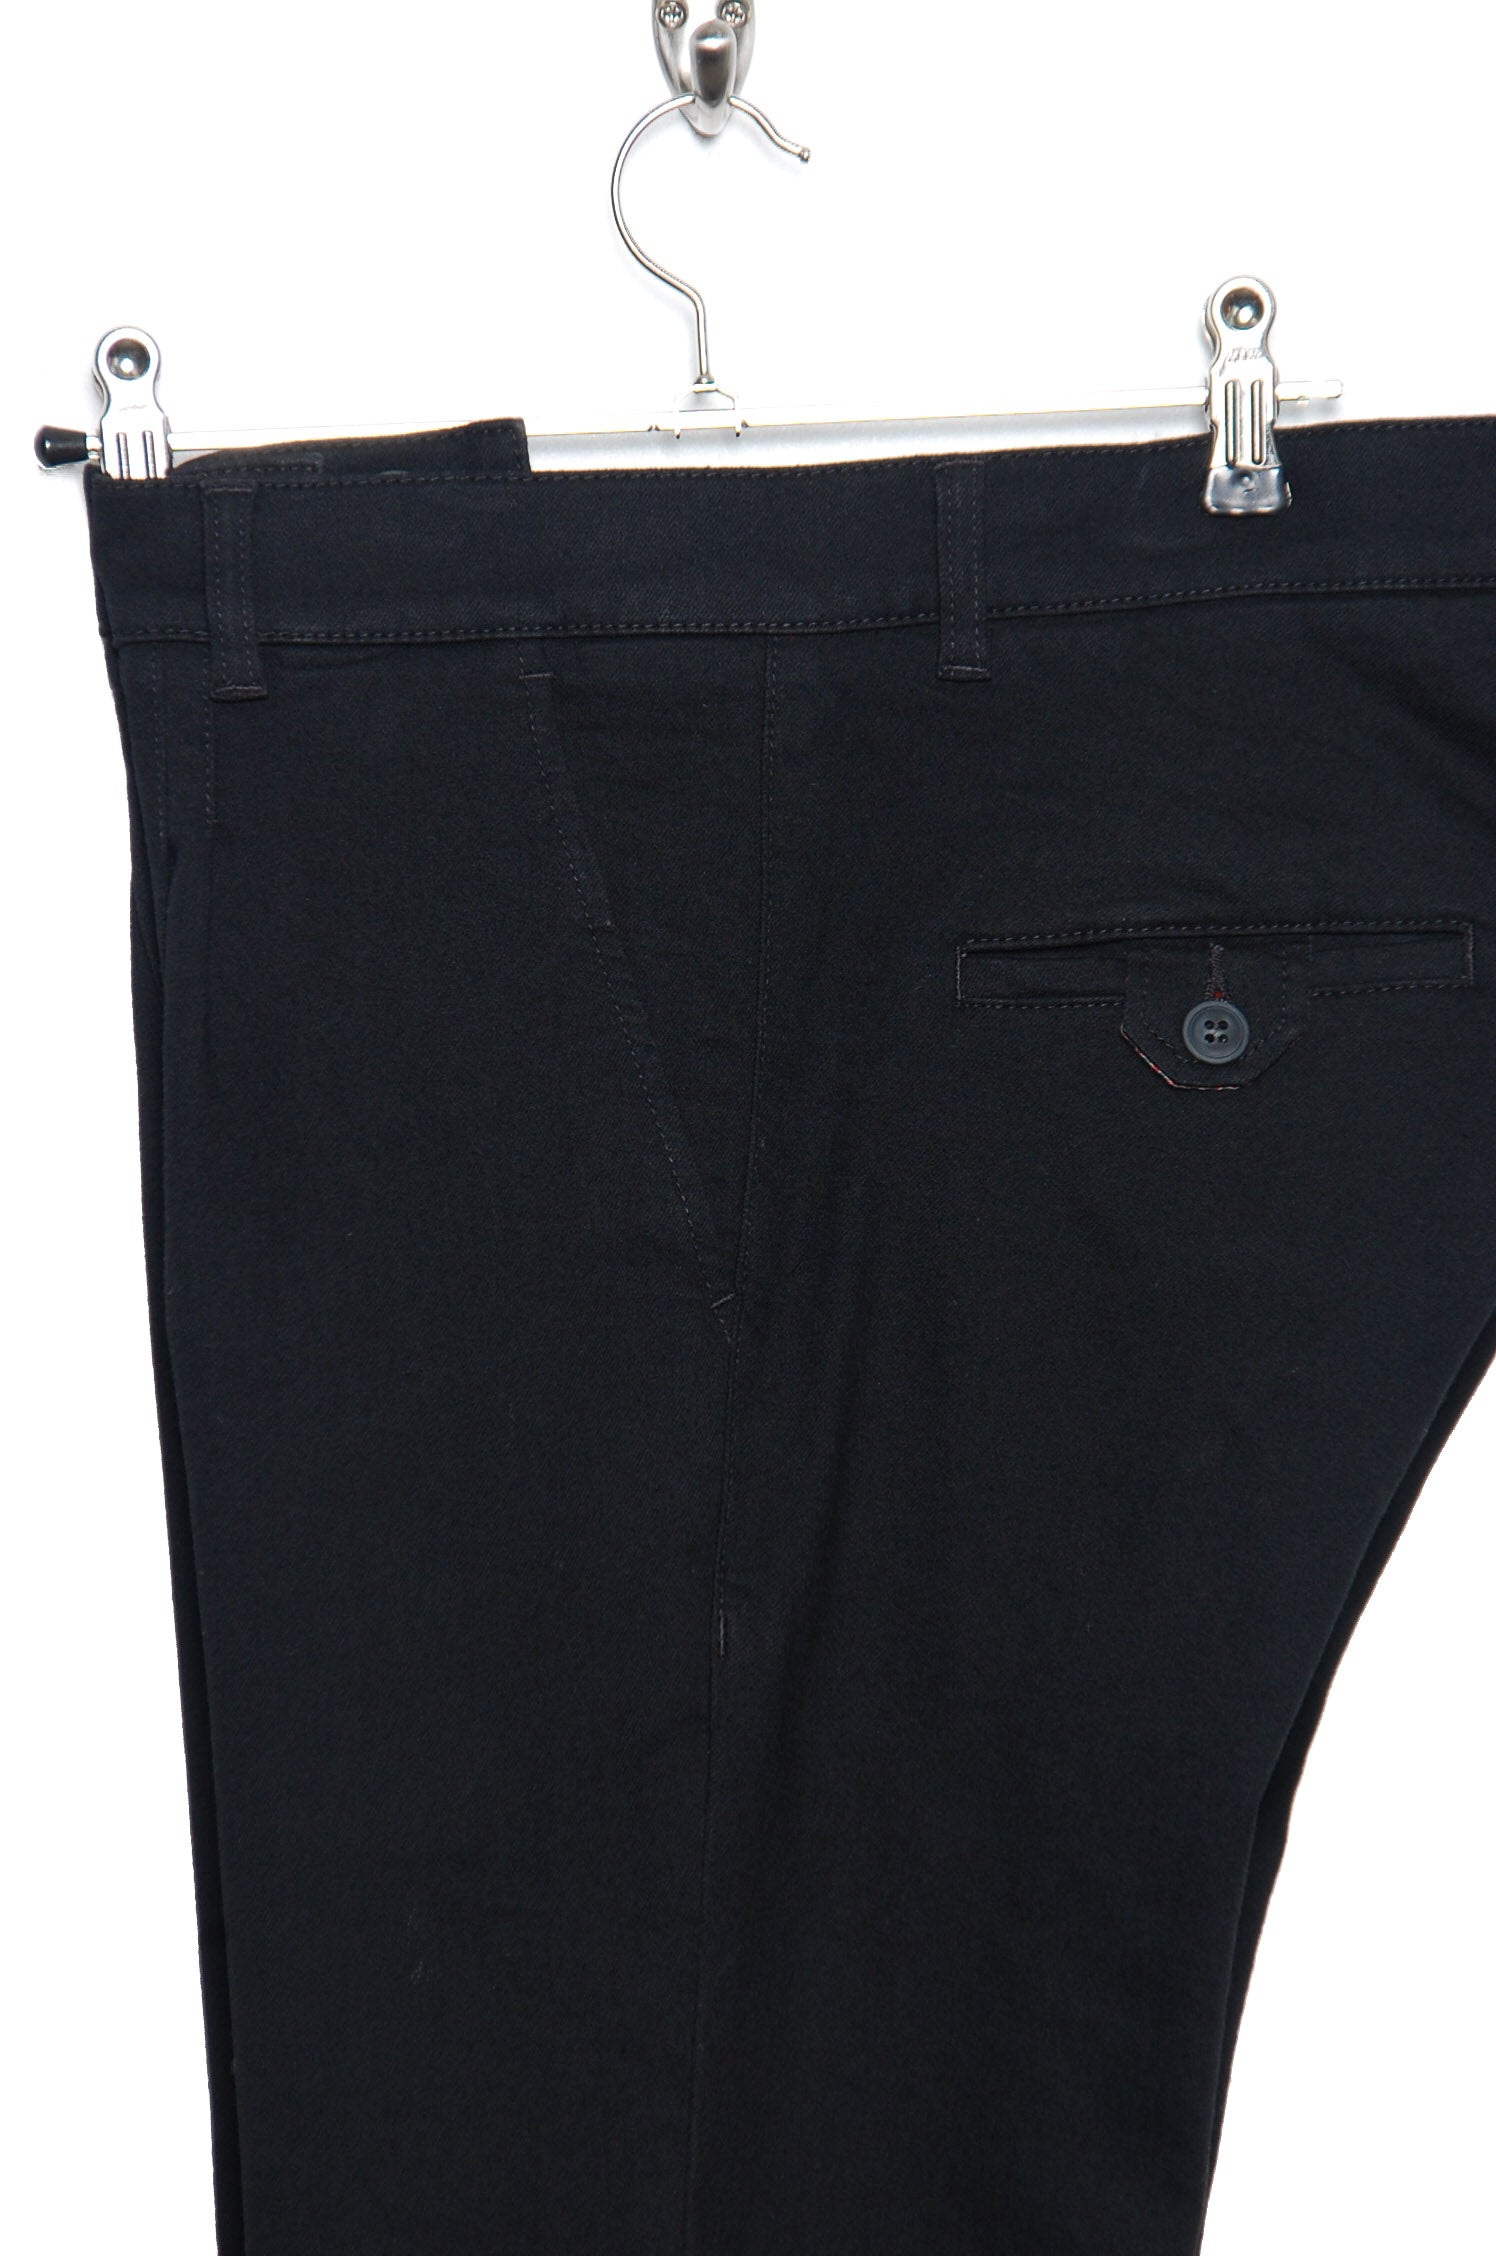 Reykjavik District Grant Pants black